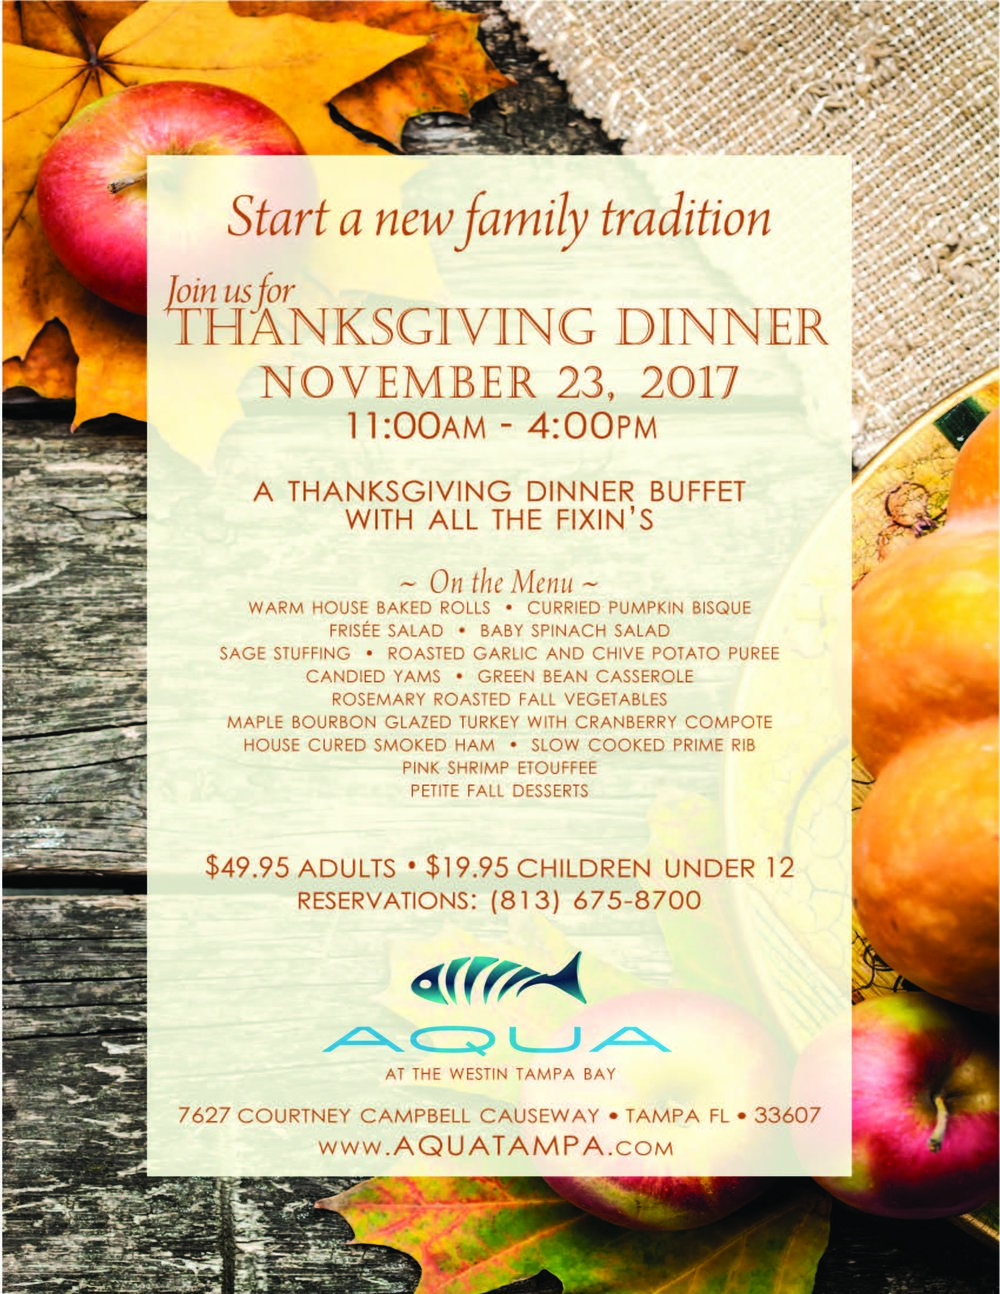 AQUA Thanksgiving 2017 (003).jpg